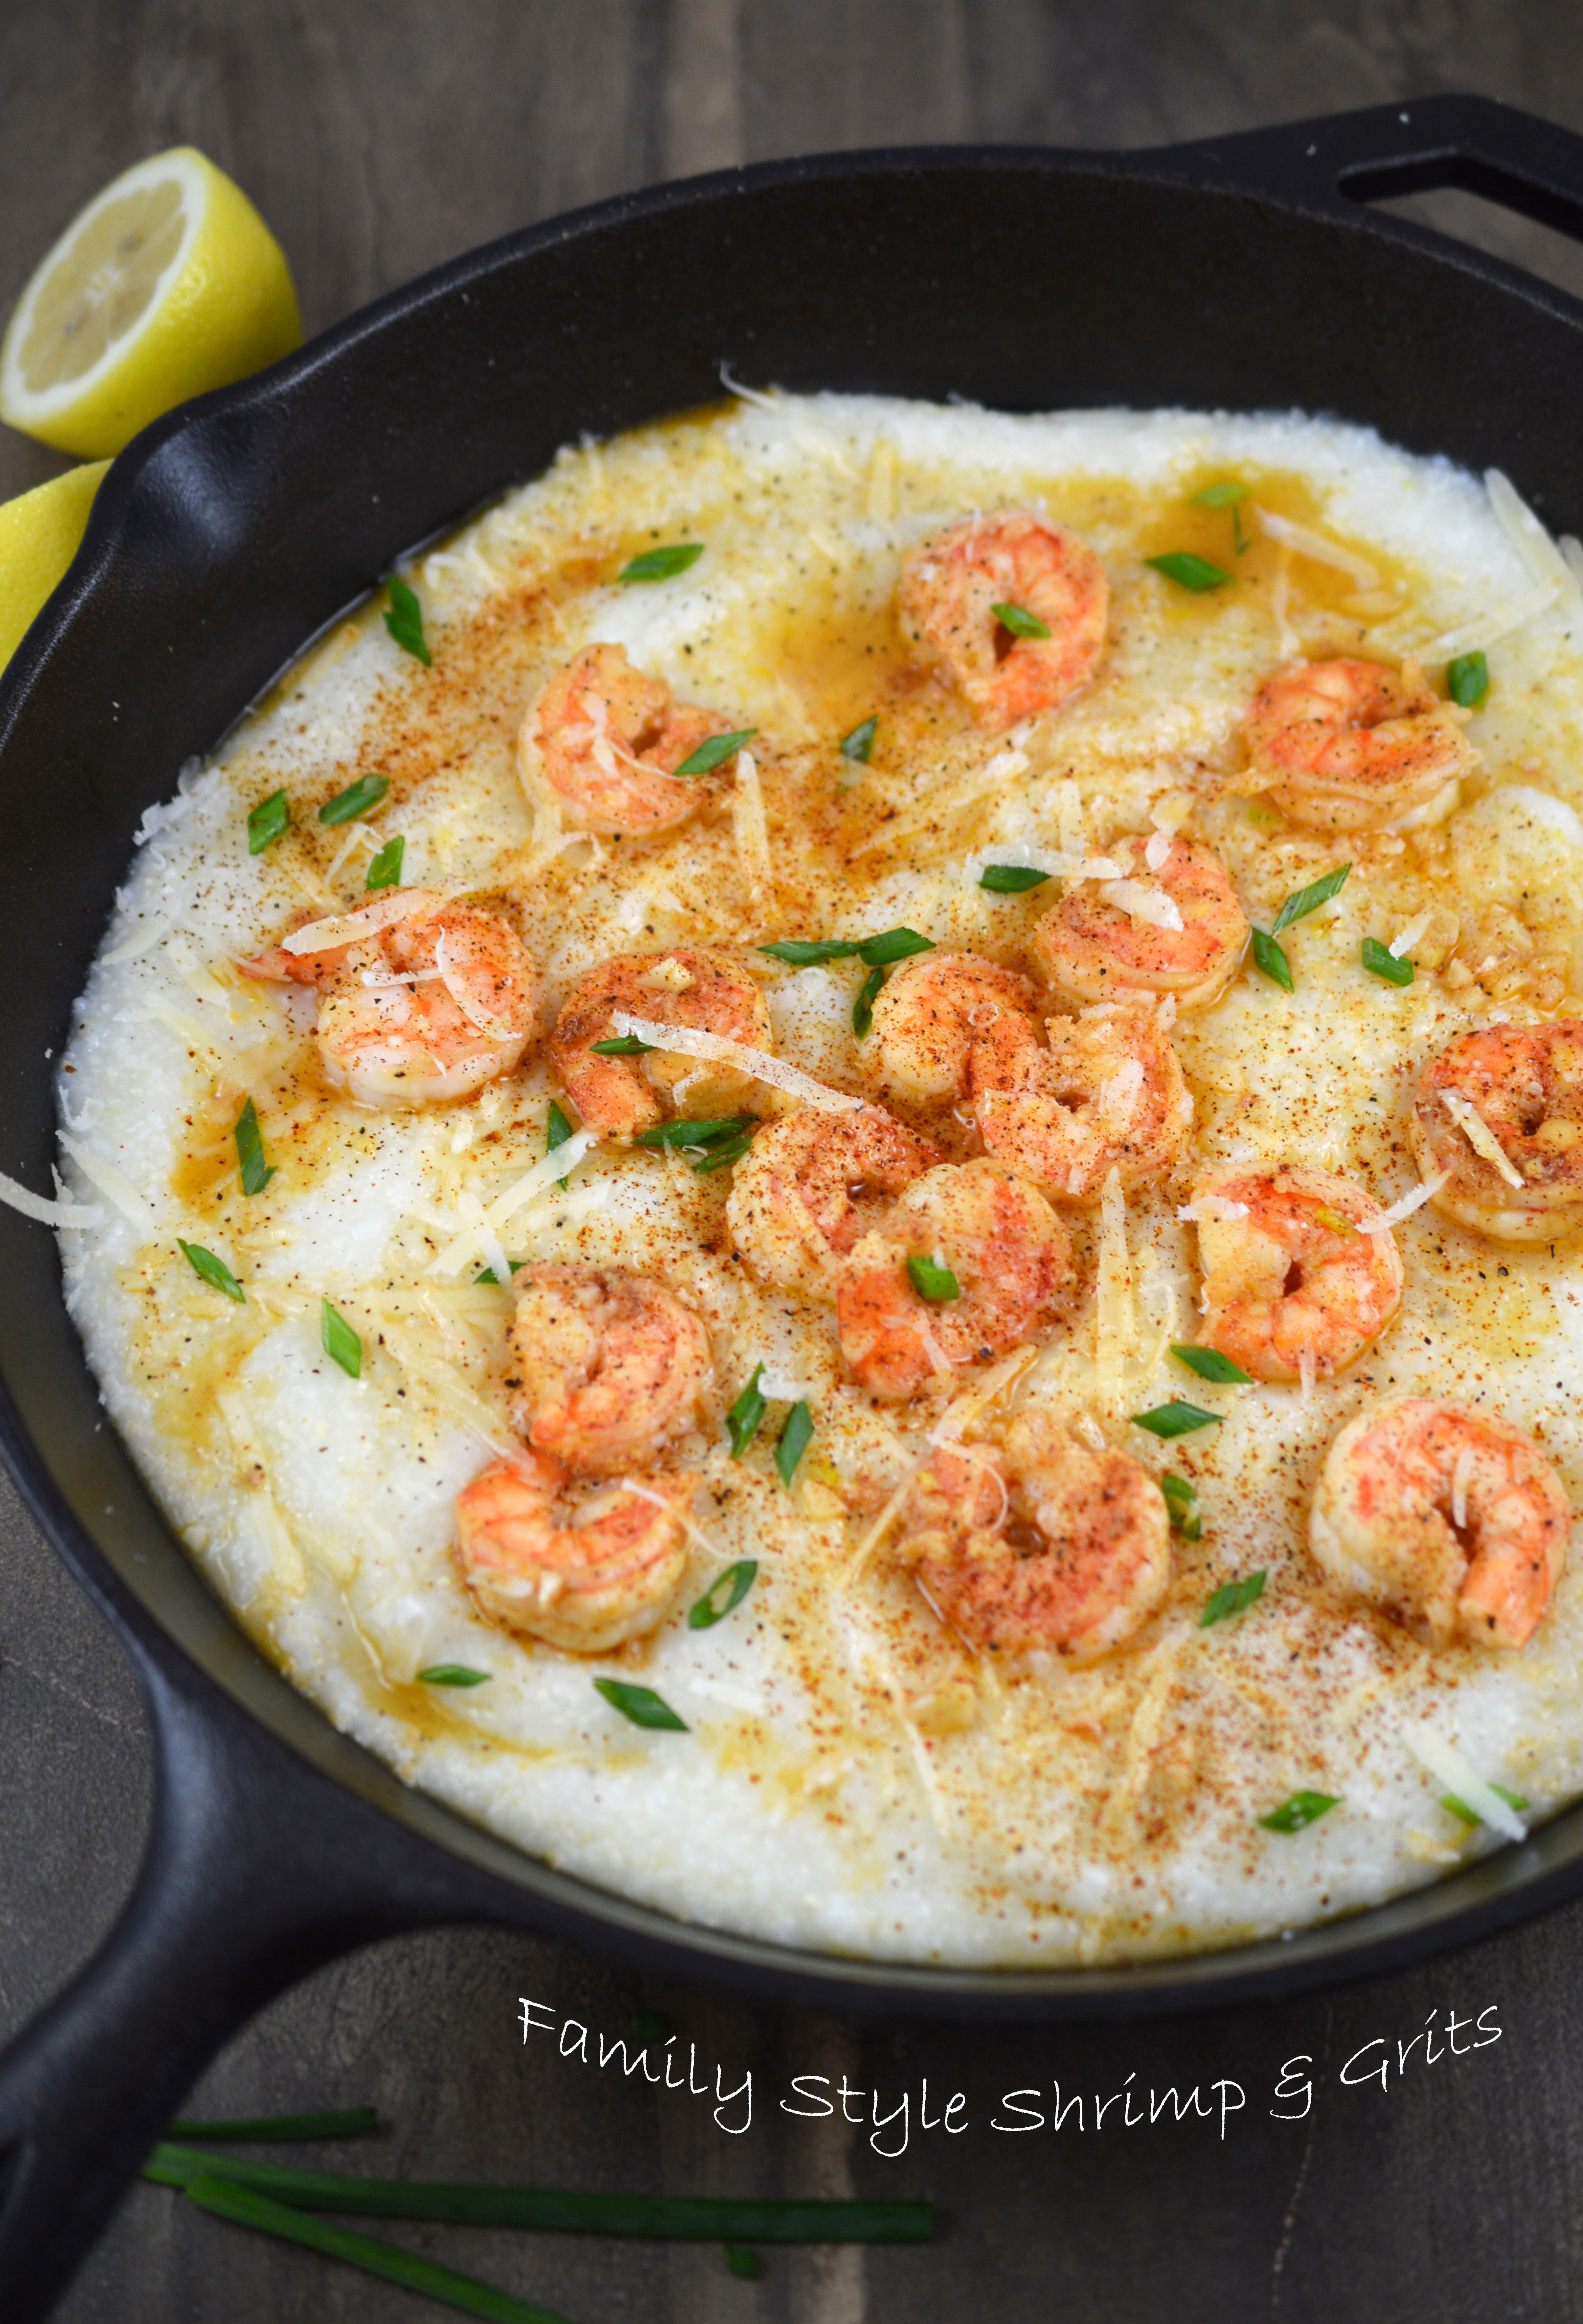 Creamy shrimp grits chef savvy shrimp and grits making forumfinder Choice Image